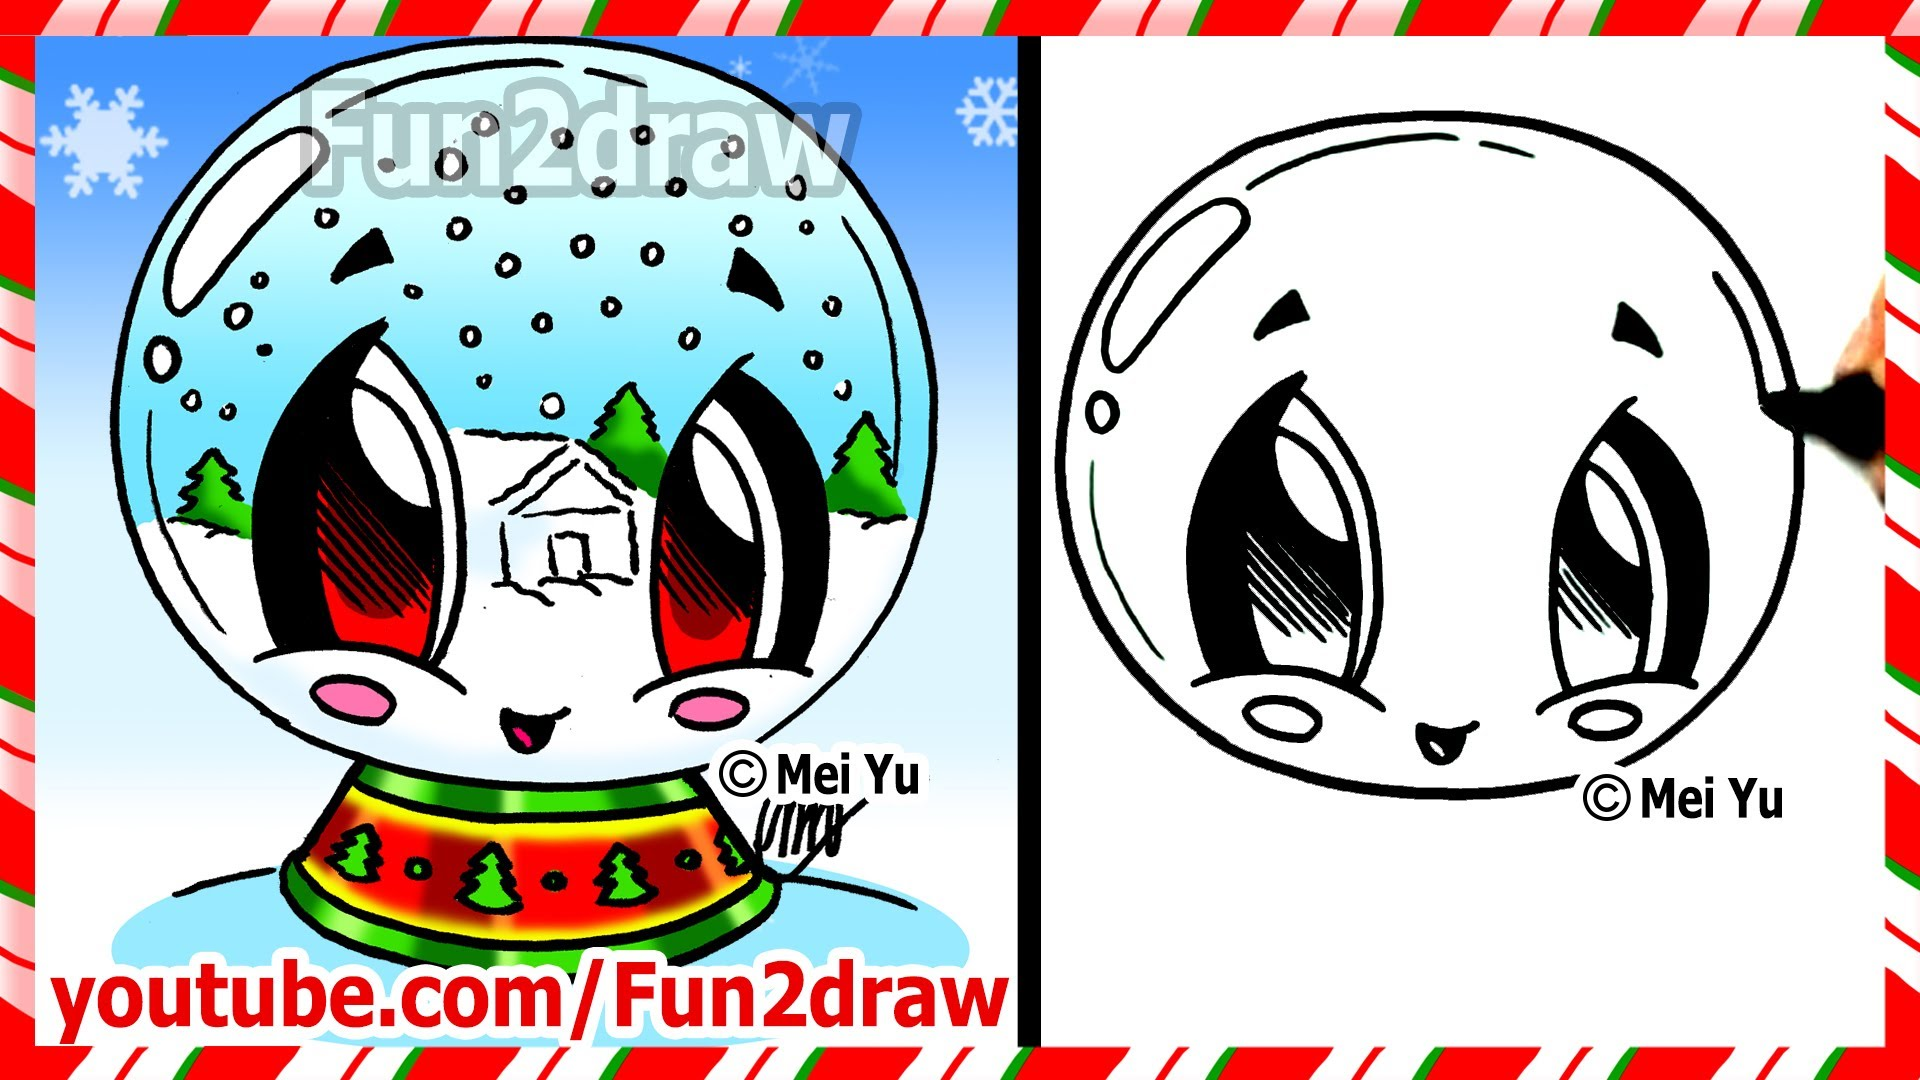 Drawn puppy fun christmas Globe Snow Christmas to to